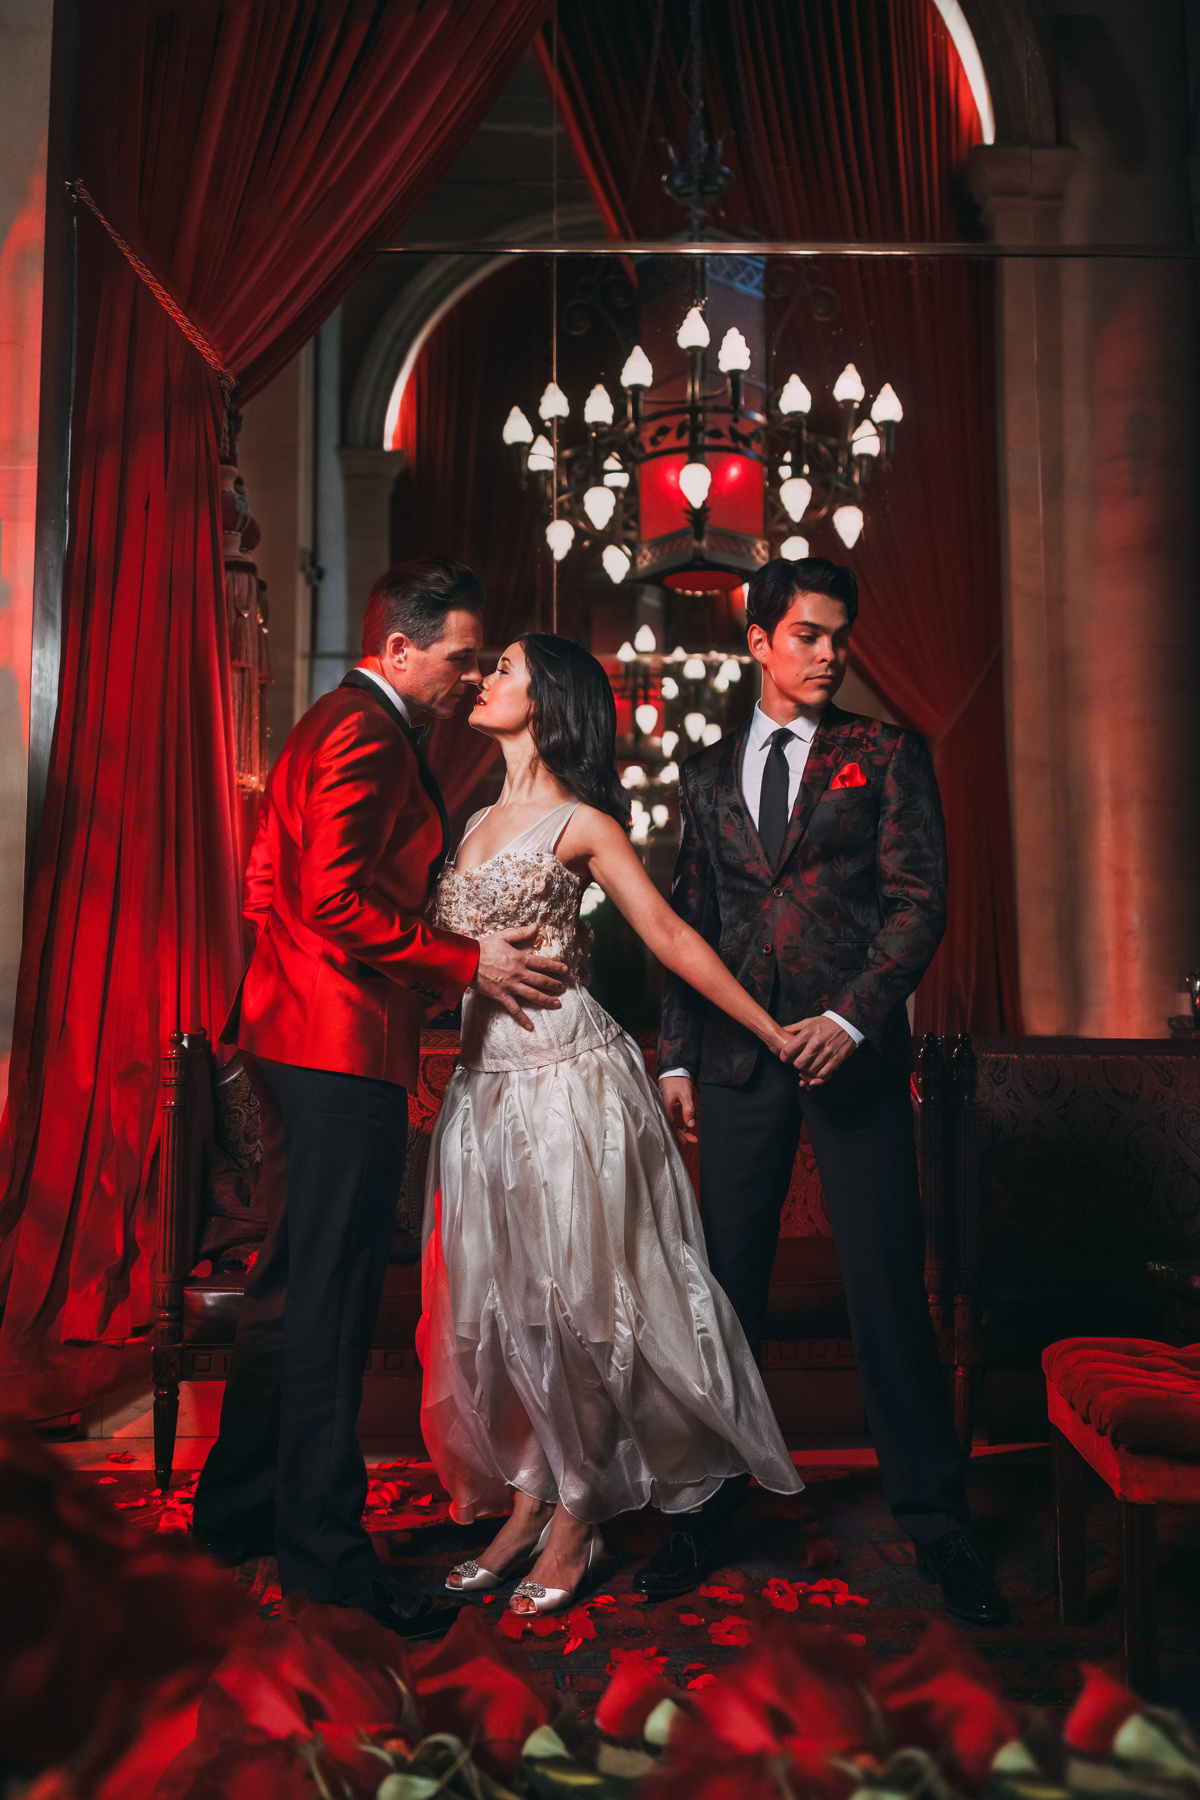 Rodney Ingram, Ali Ewoldt and Peter Joback for Phantom of the Opera's 30th Anniversary photo by: Caitlin McNaney